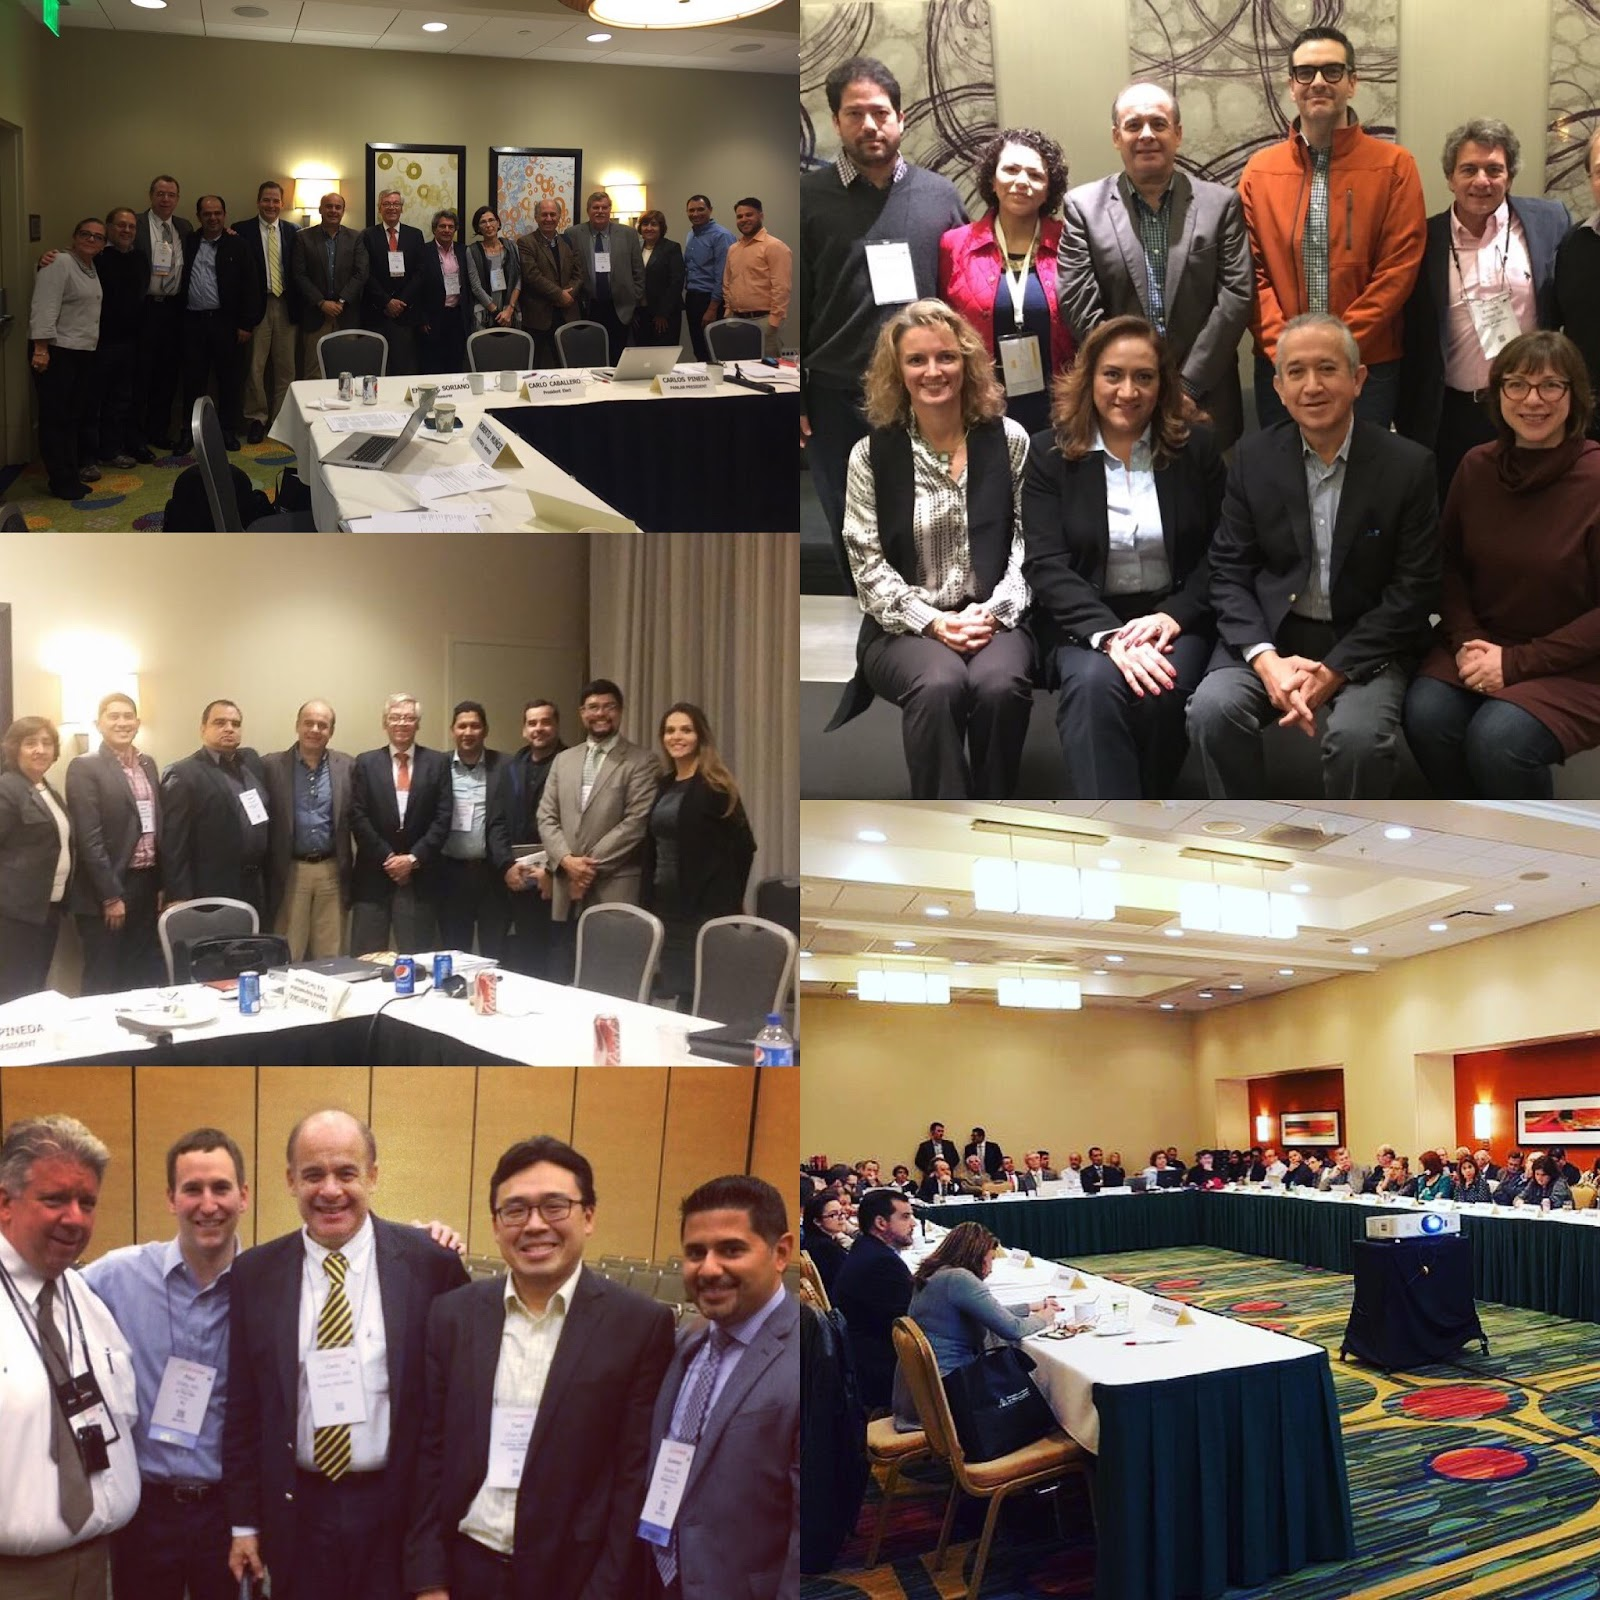 #ConcluACR15 @ACRheum Thanks!!! A lot of networking opportunities at #ACR15 https://t.co/OMfcH0DUCP #ACR15